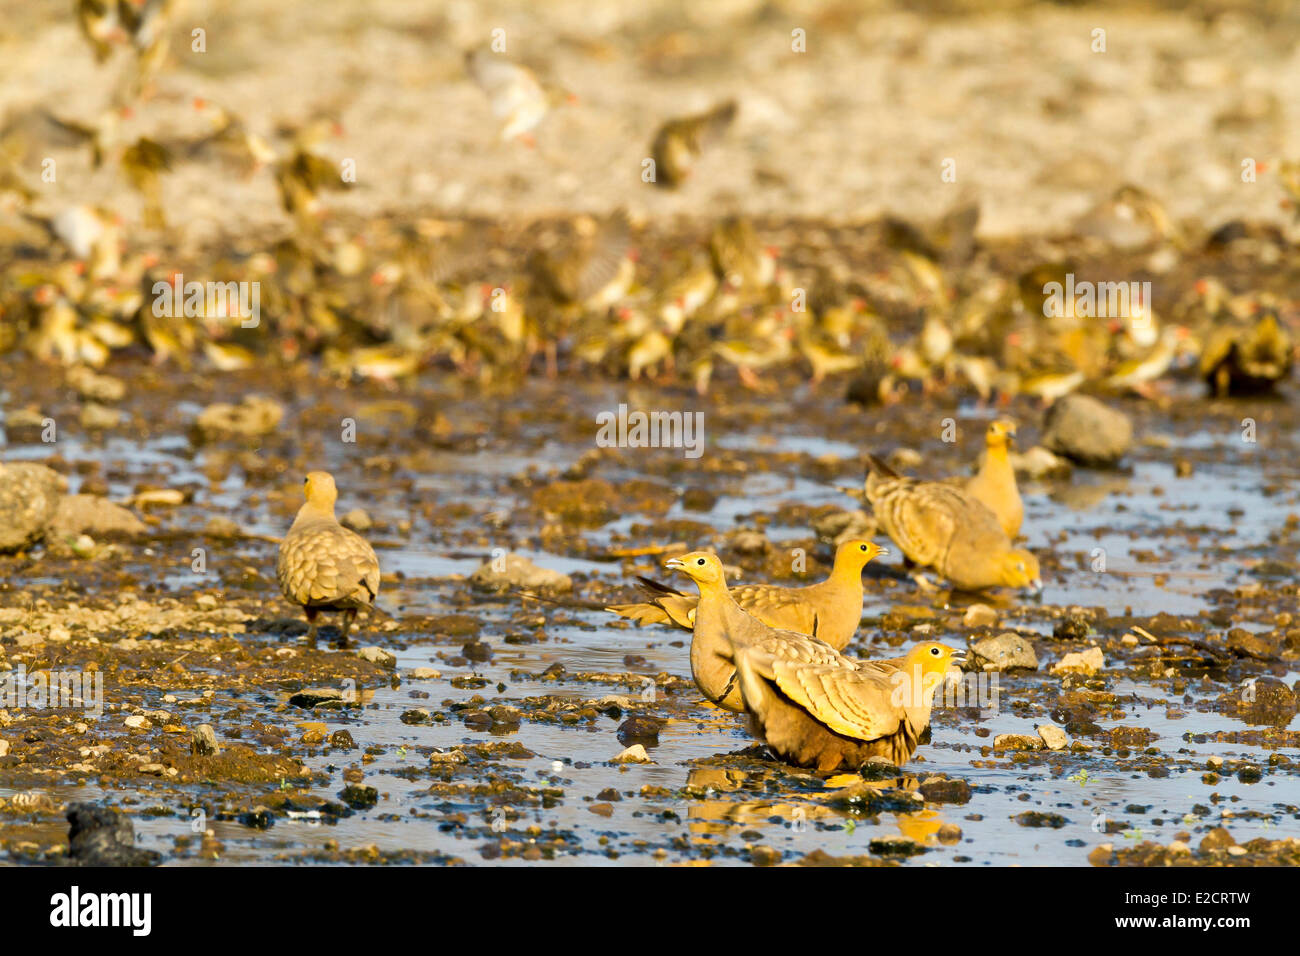 Kenya lake Magadi yellow-throated sandgrouse (Pterocles gutturalis) drinking Stock Photo